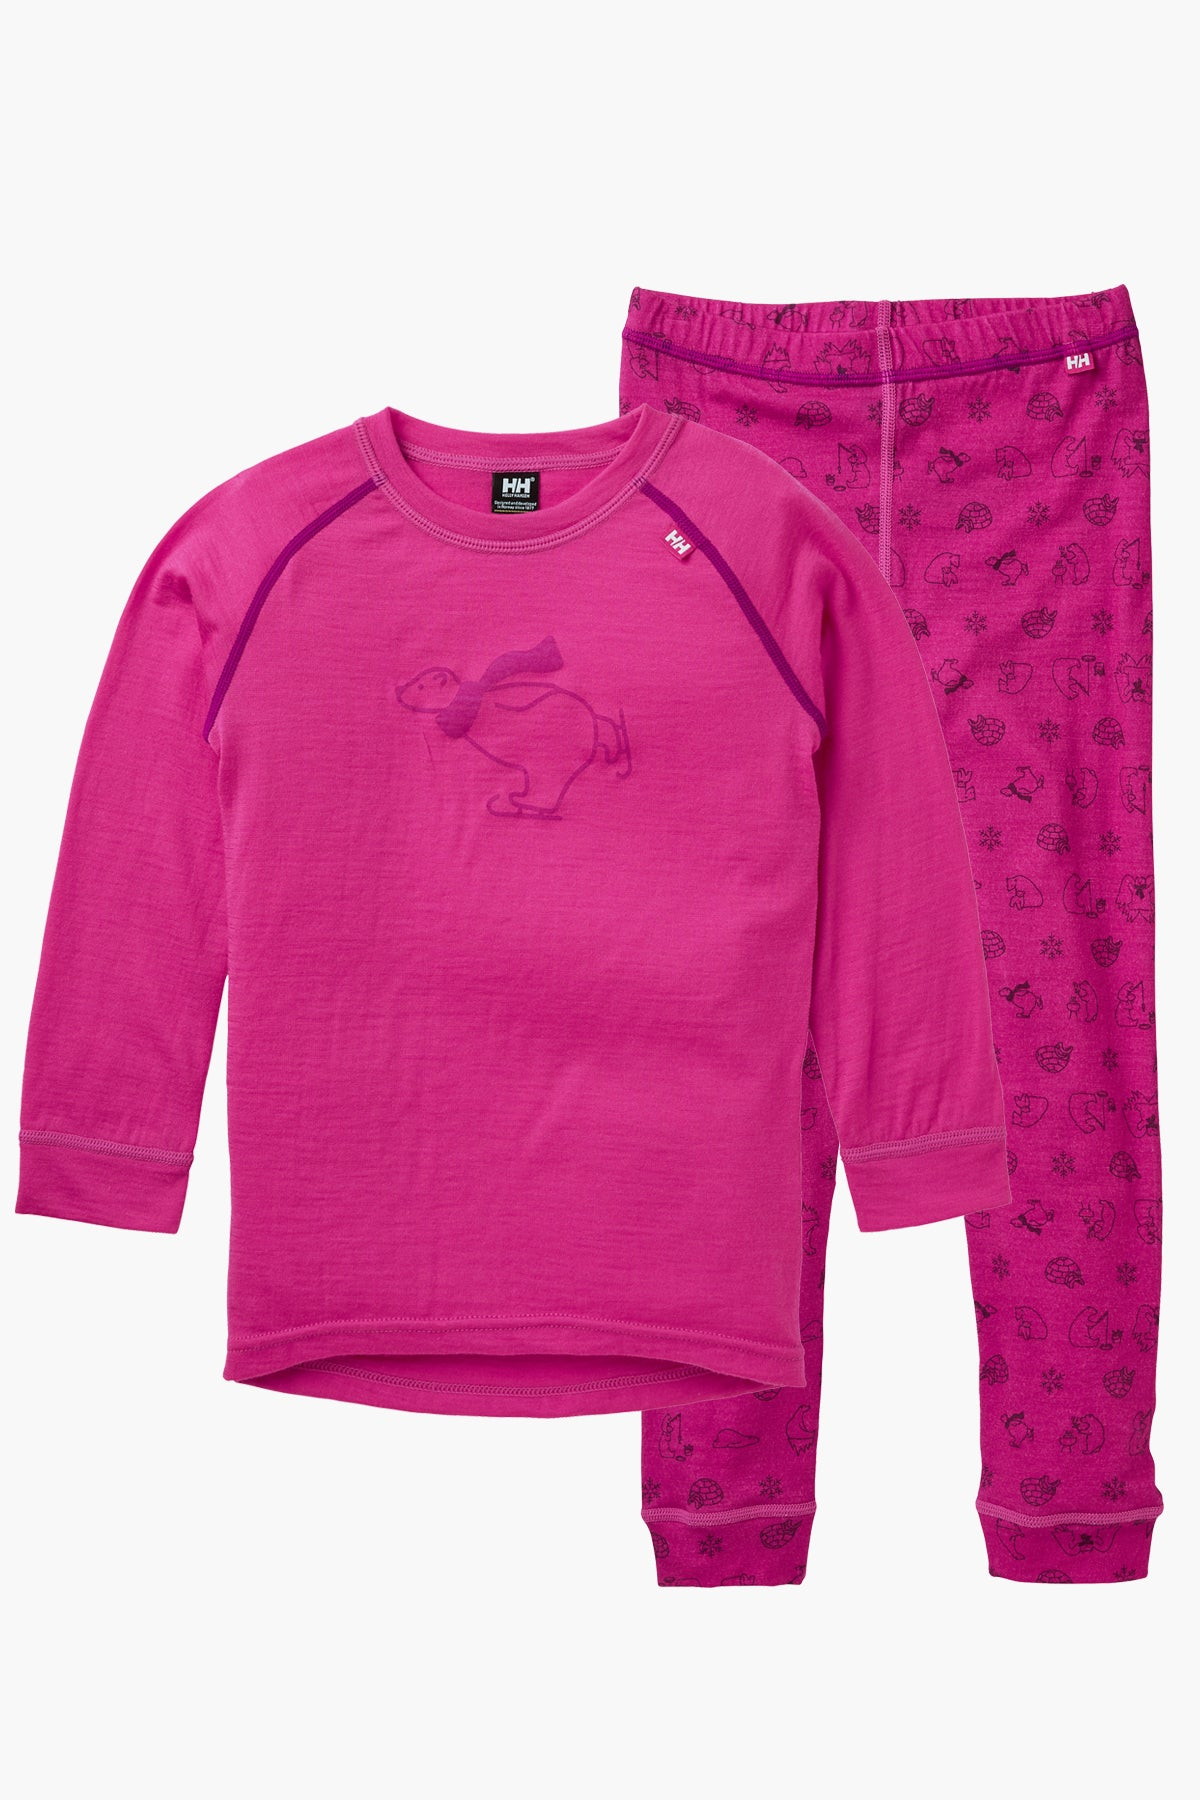 Helly Hansen Merino Mid Set - Dragon Fruit